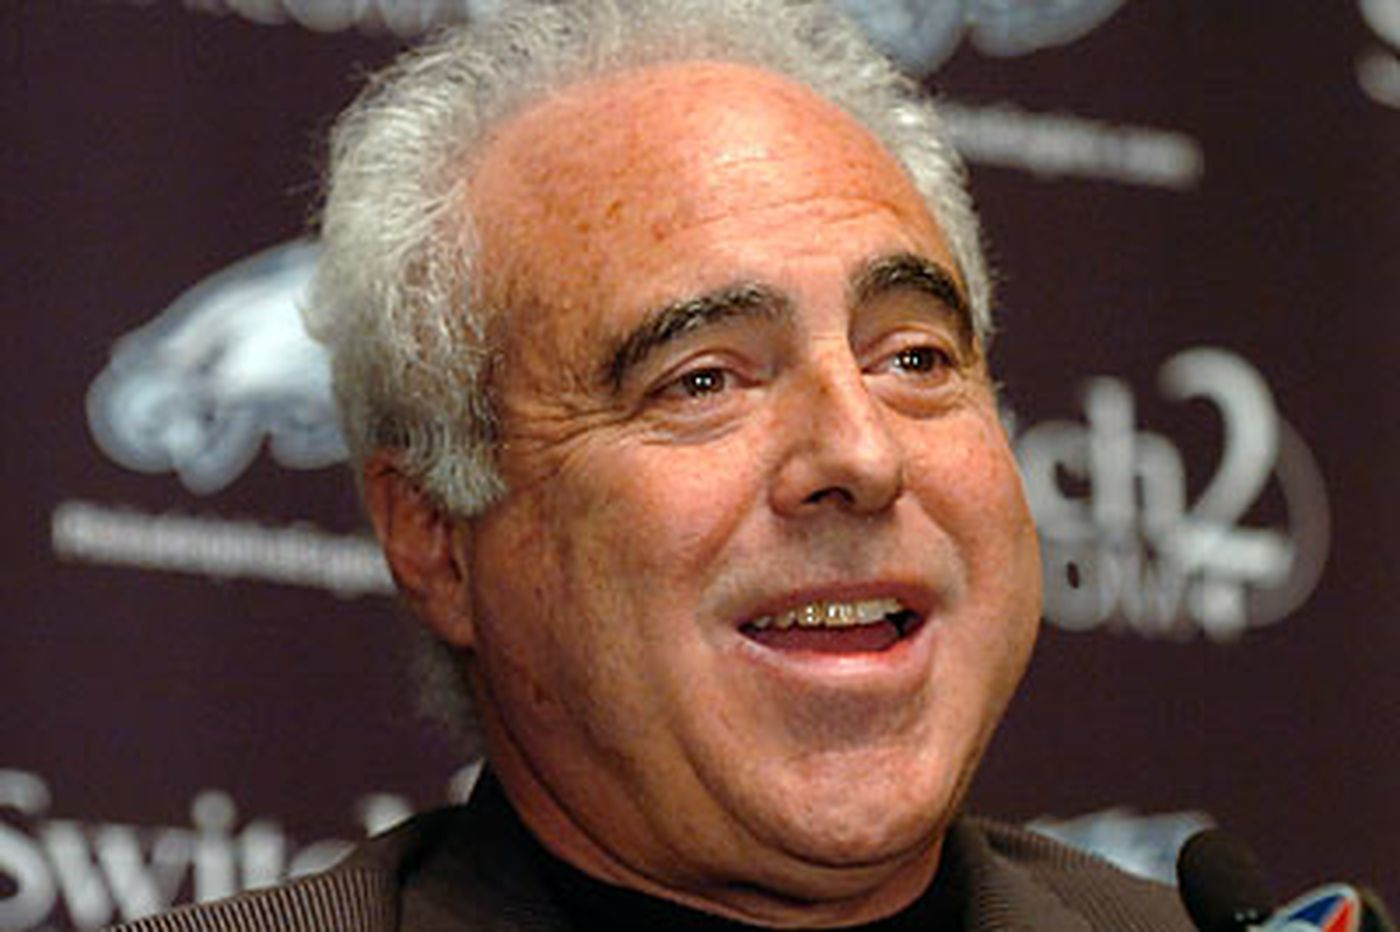 Lurie remains fond of Dawkins